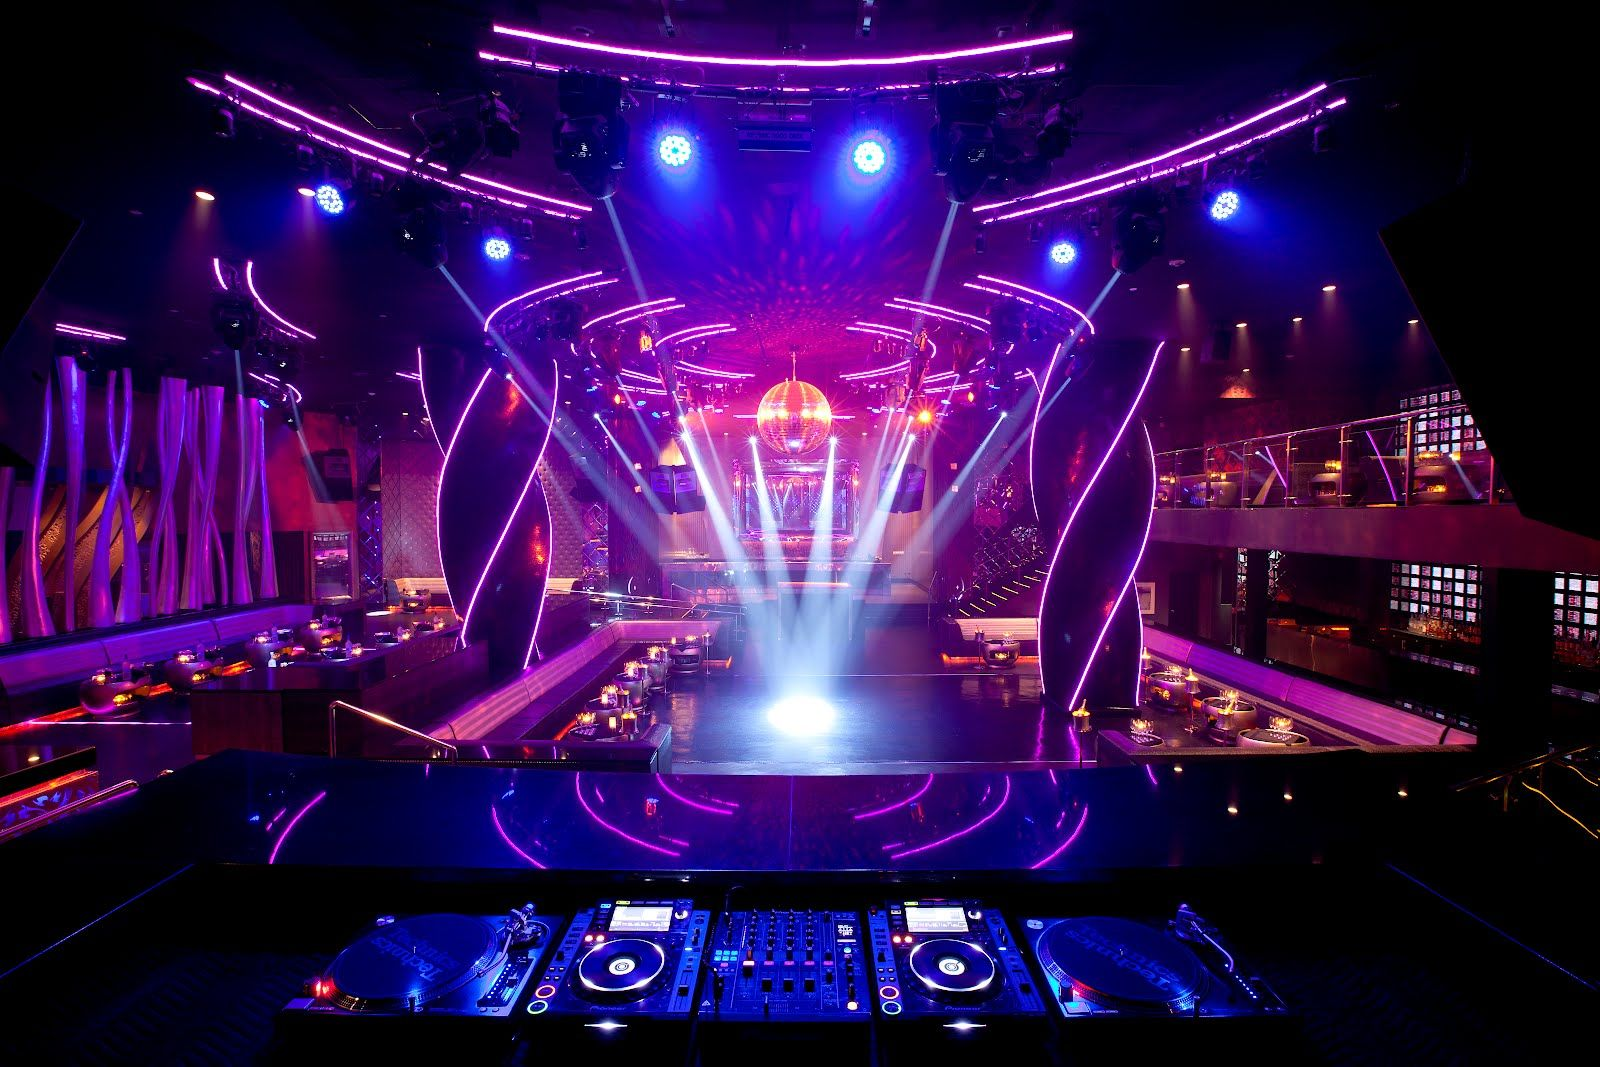 Oro Nightclub Punta Cana Nightclub Design Night Club Hard Rock Hotel